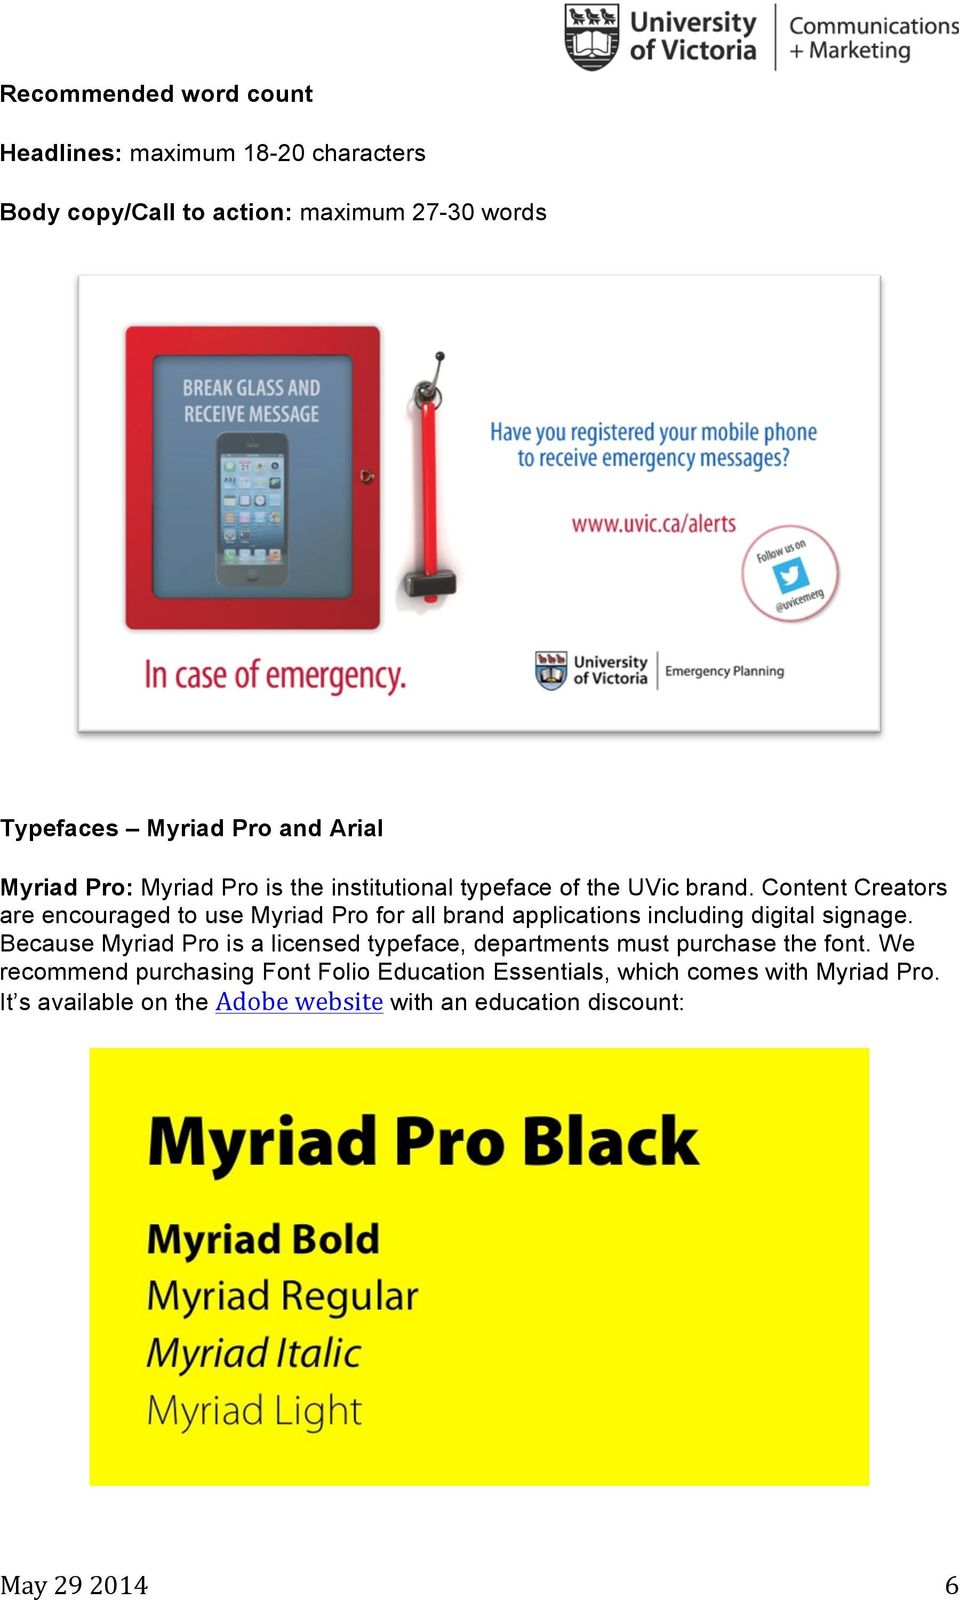 Content Creators are encouraged to use Myriad Pro for all brand applications including digital signage.